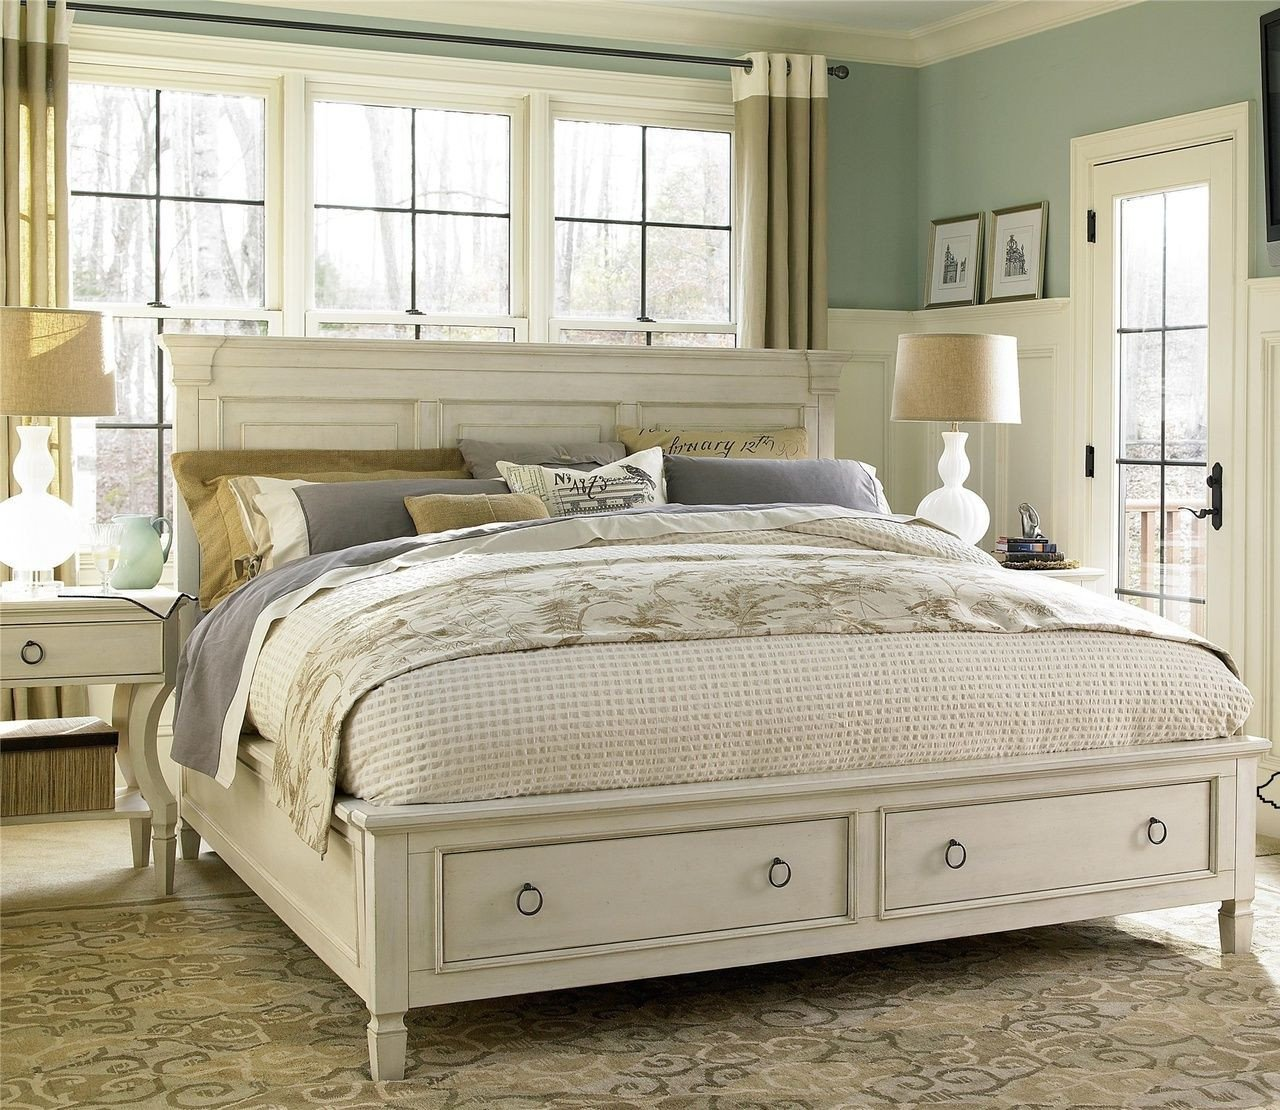 Queen Size Bedroom Suit New Country Chic Wood King Size White Storage Bed